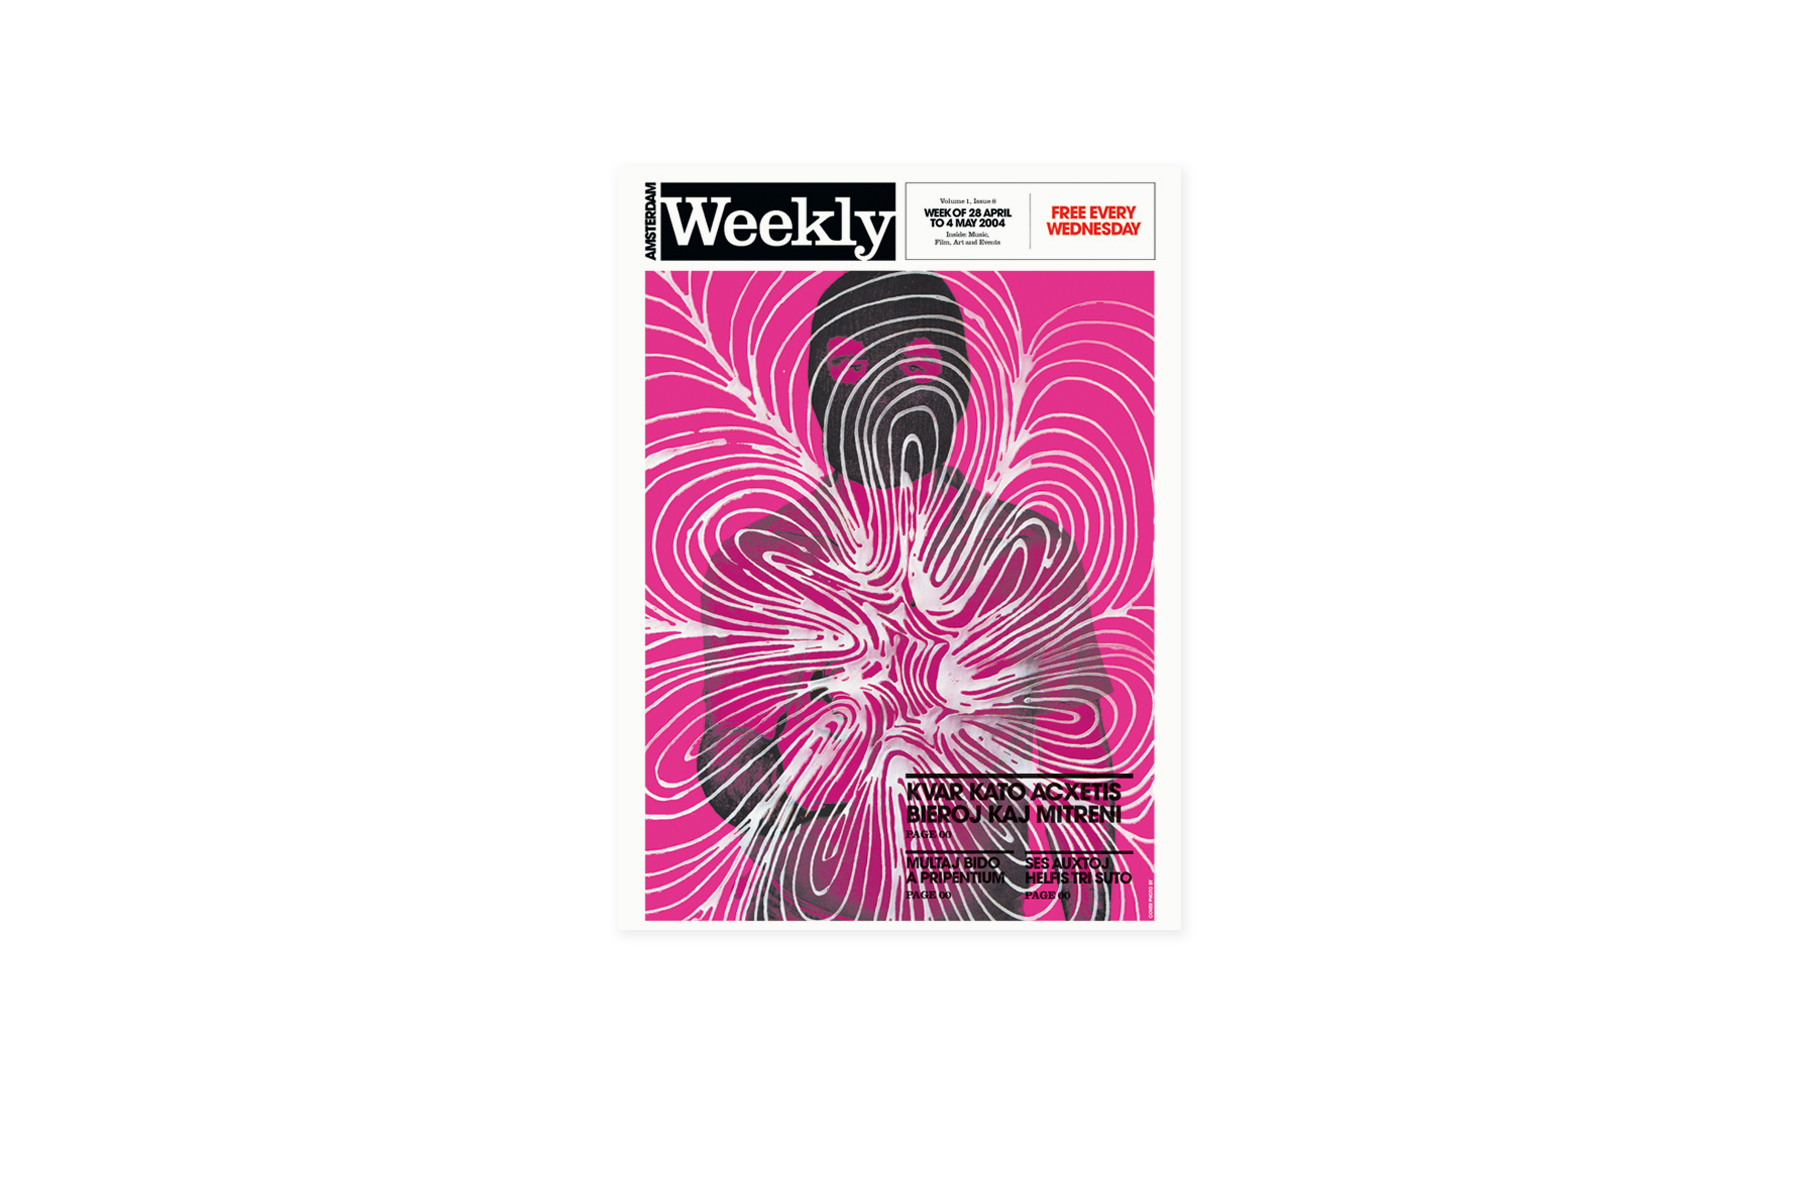 JAN ROTHUIZEN-Amsterdam Weekly